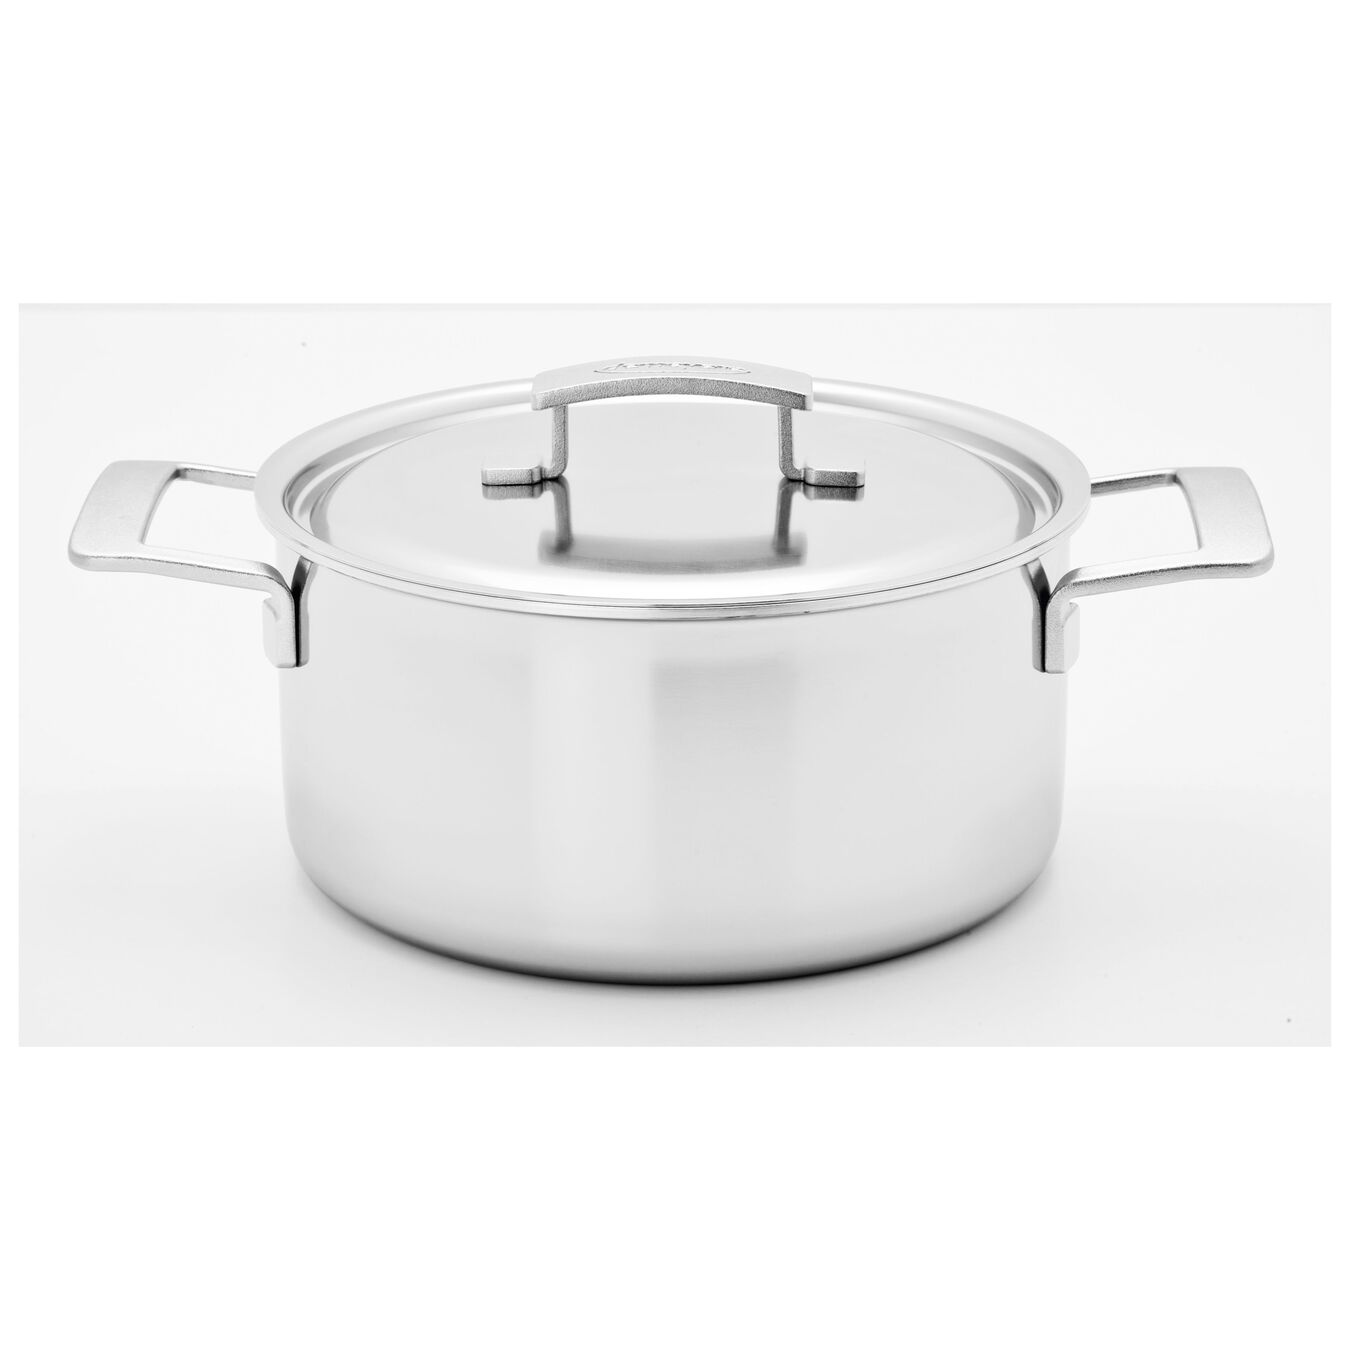 5.5-qt Stainless Steel Dutch Oven,,large 1